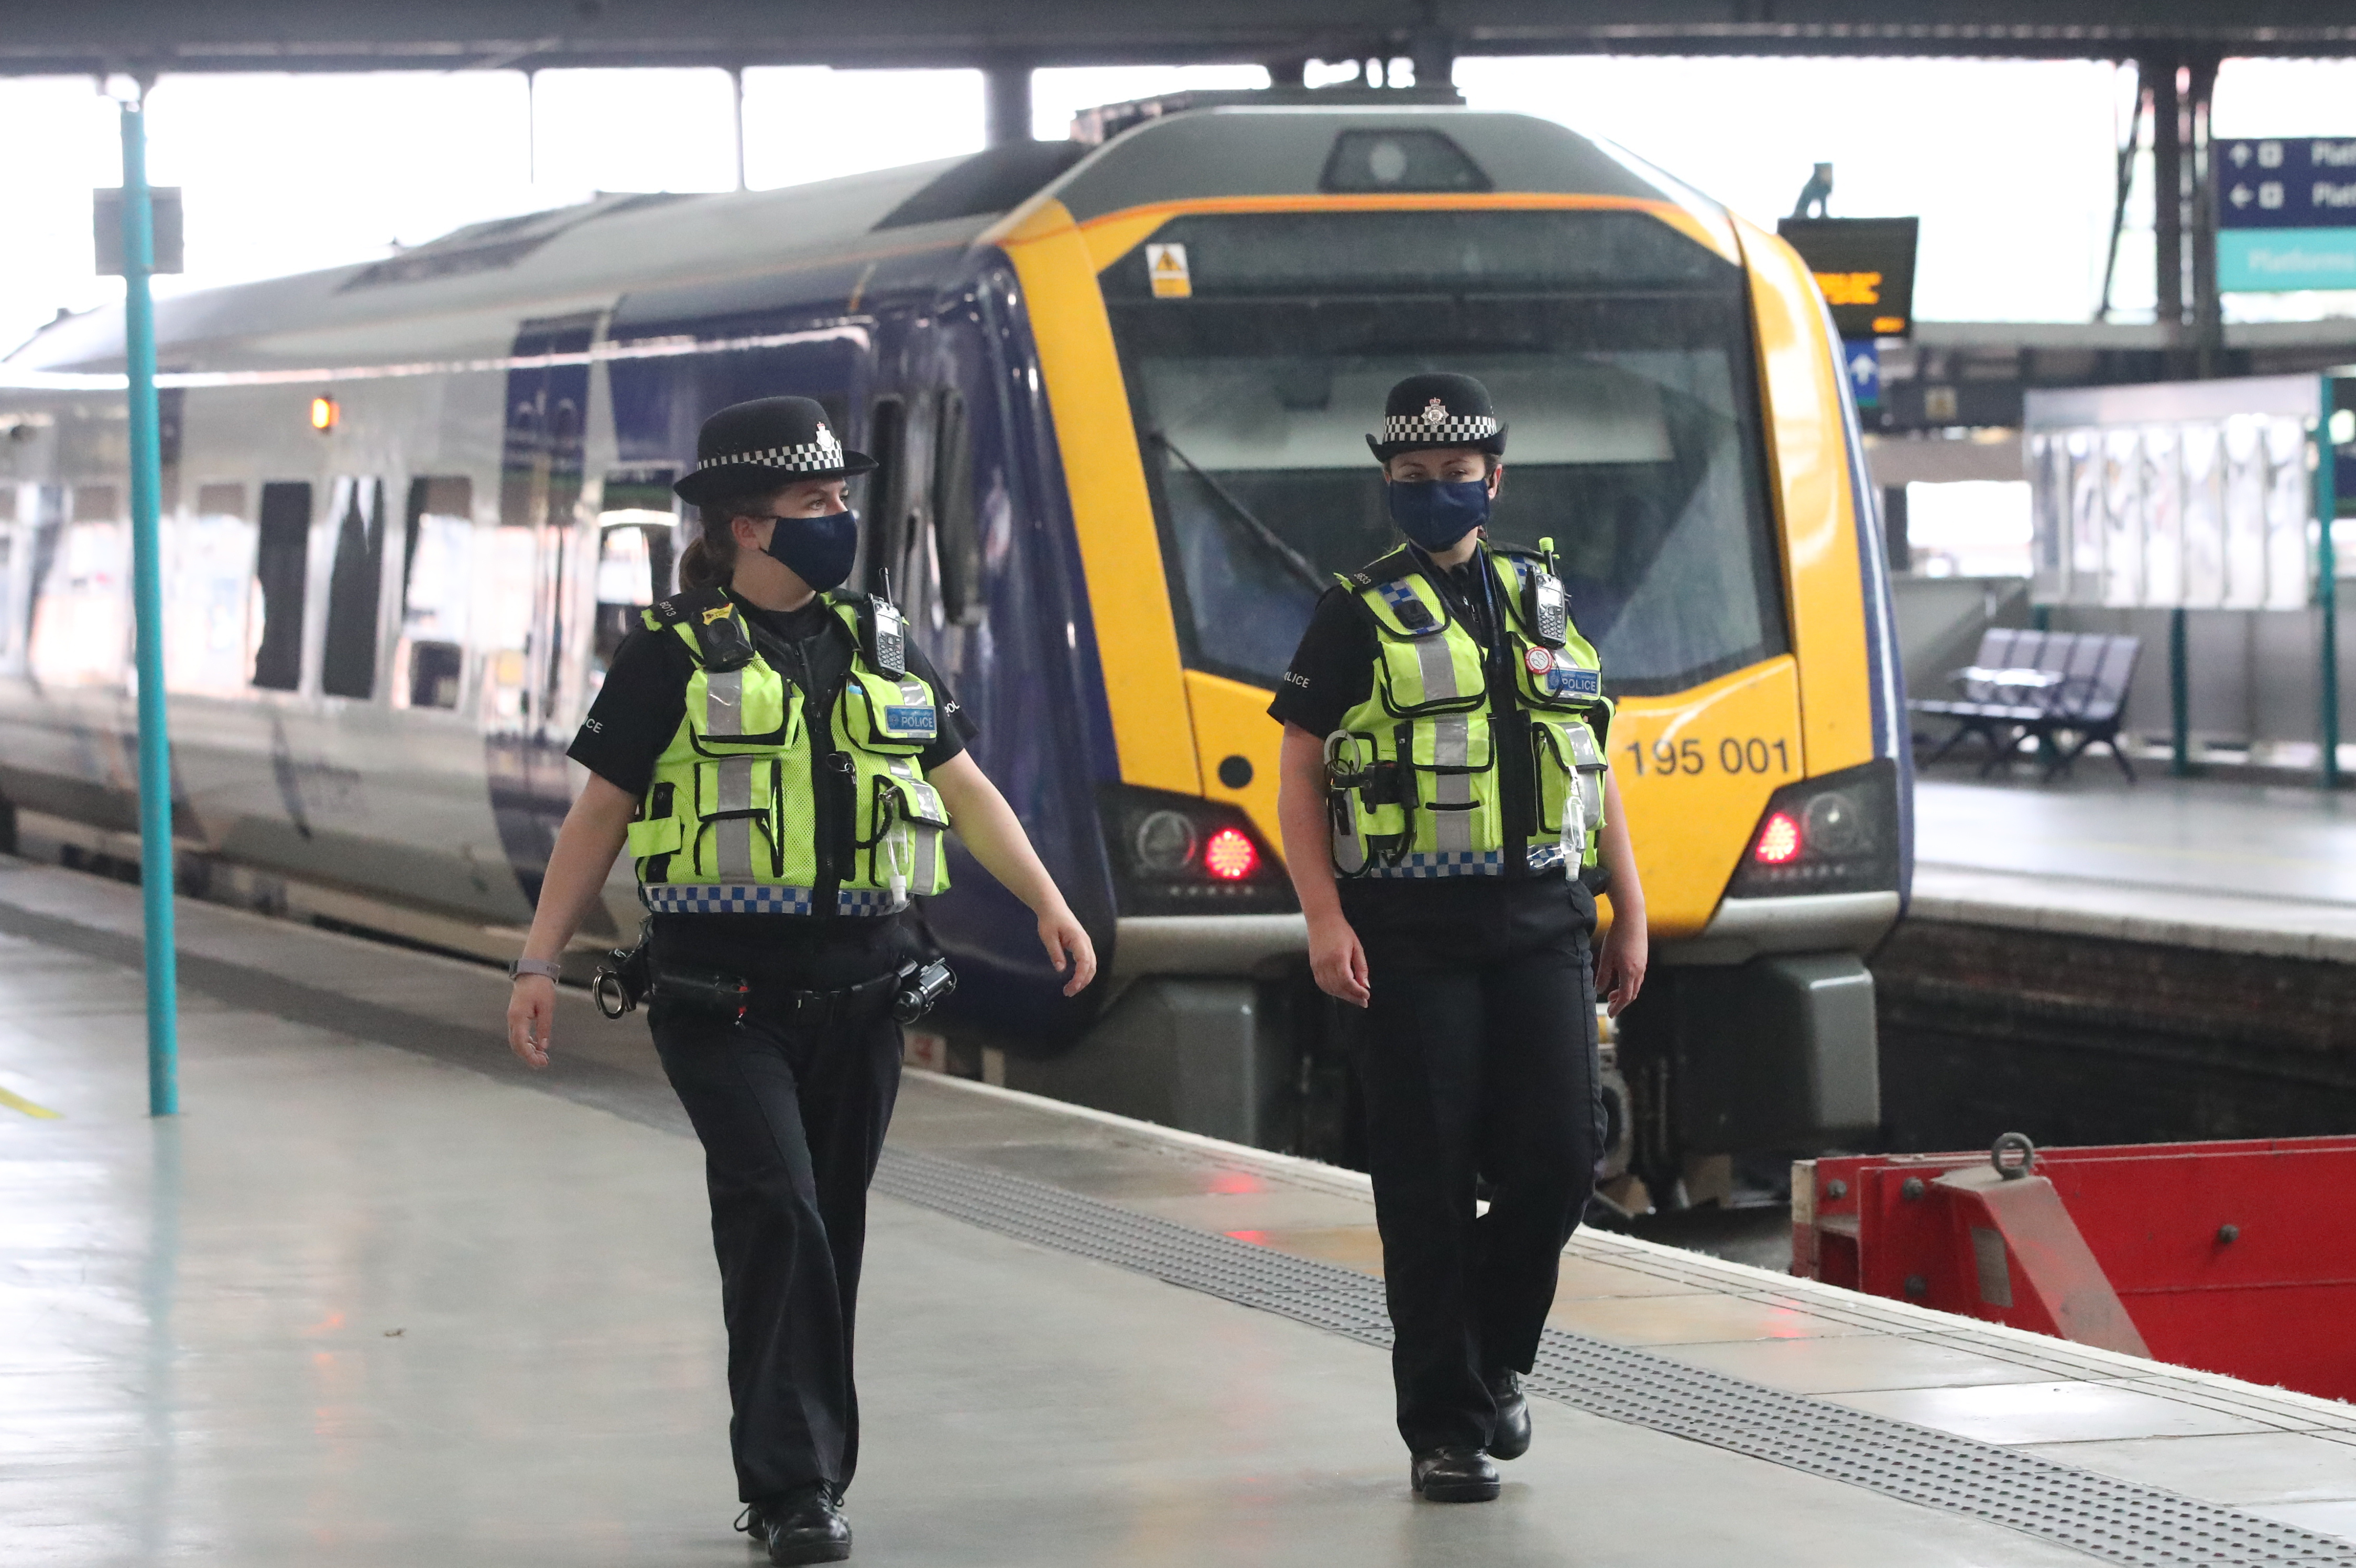 Police officers wearing face masks at Leeds railway station as face coverings become mandatory on public transport in England with the easing of further lockdown restrictions during the coronavirus pandemic. (Photo by Danny Lawson/PA Images via Getty Images)